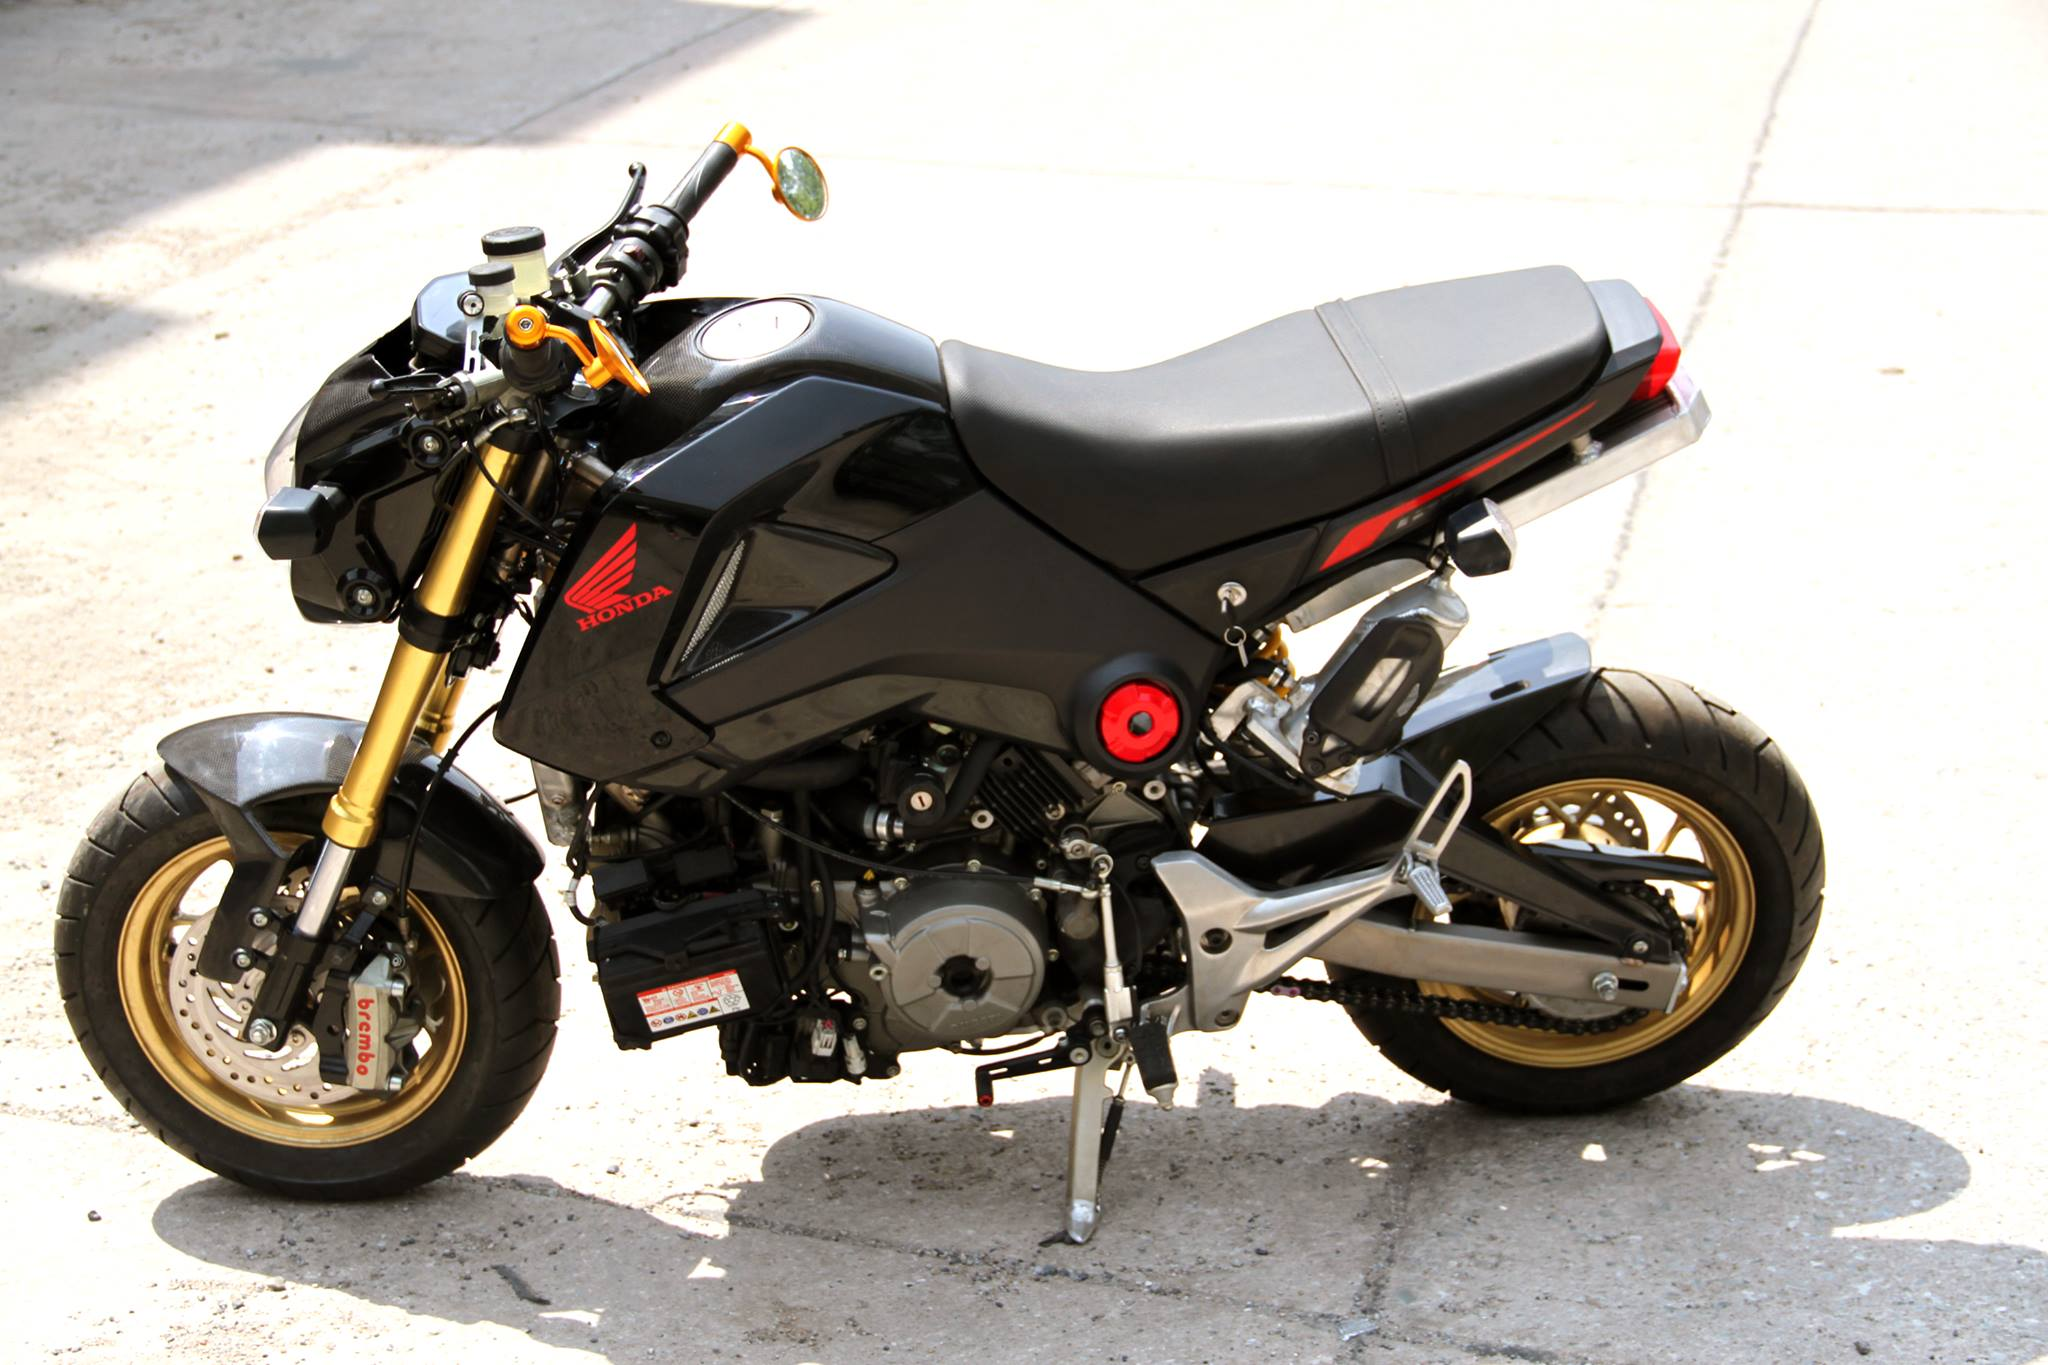 ducati 1199 panigale powered honda grom is as insane as it gets 8